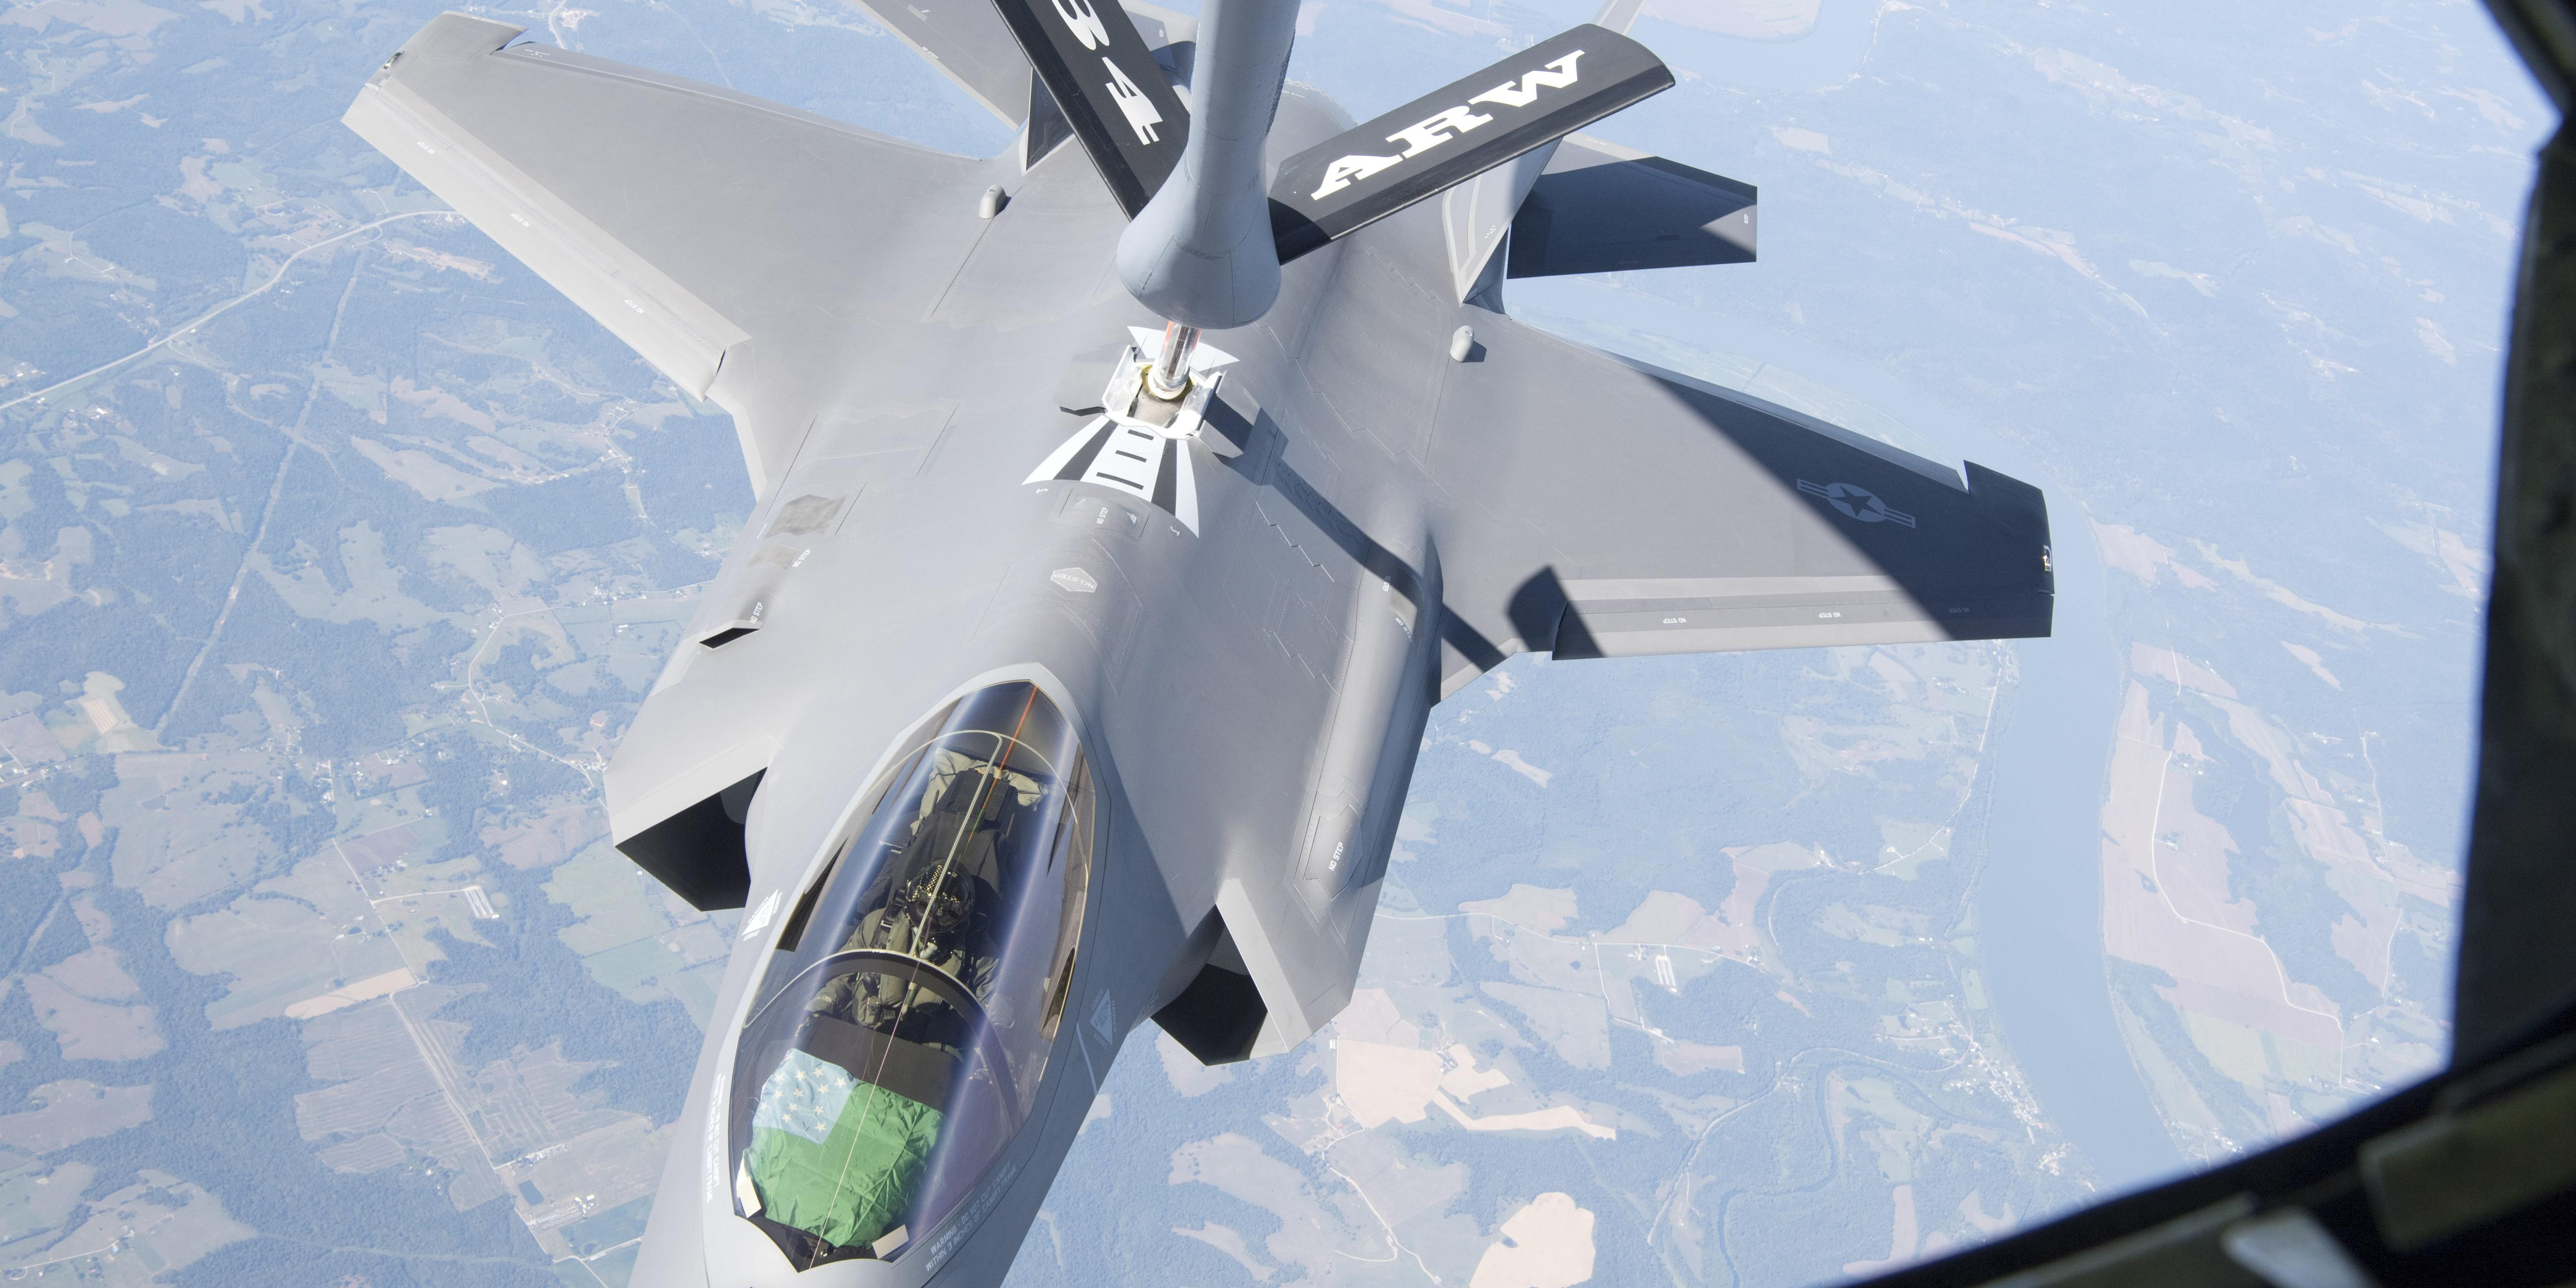 An F-35 Lightning II receives full from a KC-135 Stratotanker. The Army's communications exercises, which are being held in preparation of Project Convergence 21, are evaluating the ability of the different services to pass data from one to the other. The F-35, for example, may be used to pass information to ground forces as part of the Joint All-Domain Command and Control concept. Credit: U.S. Air Force photo/Master Sgt. Ben Mota